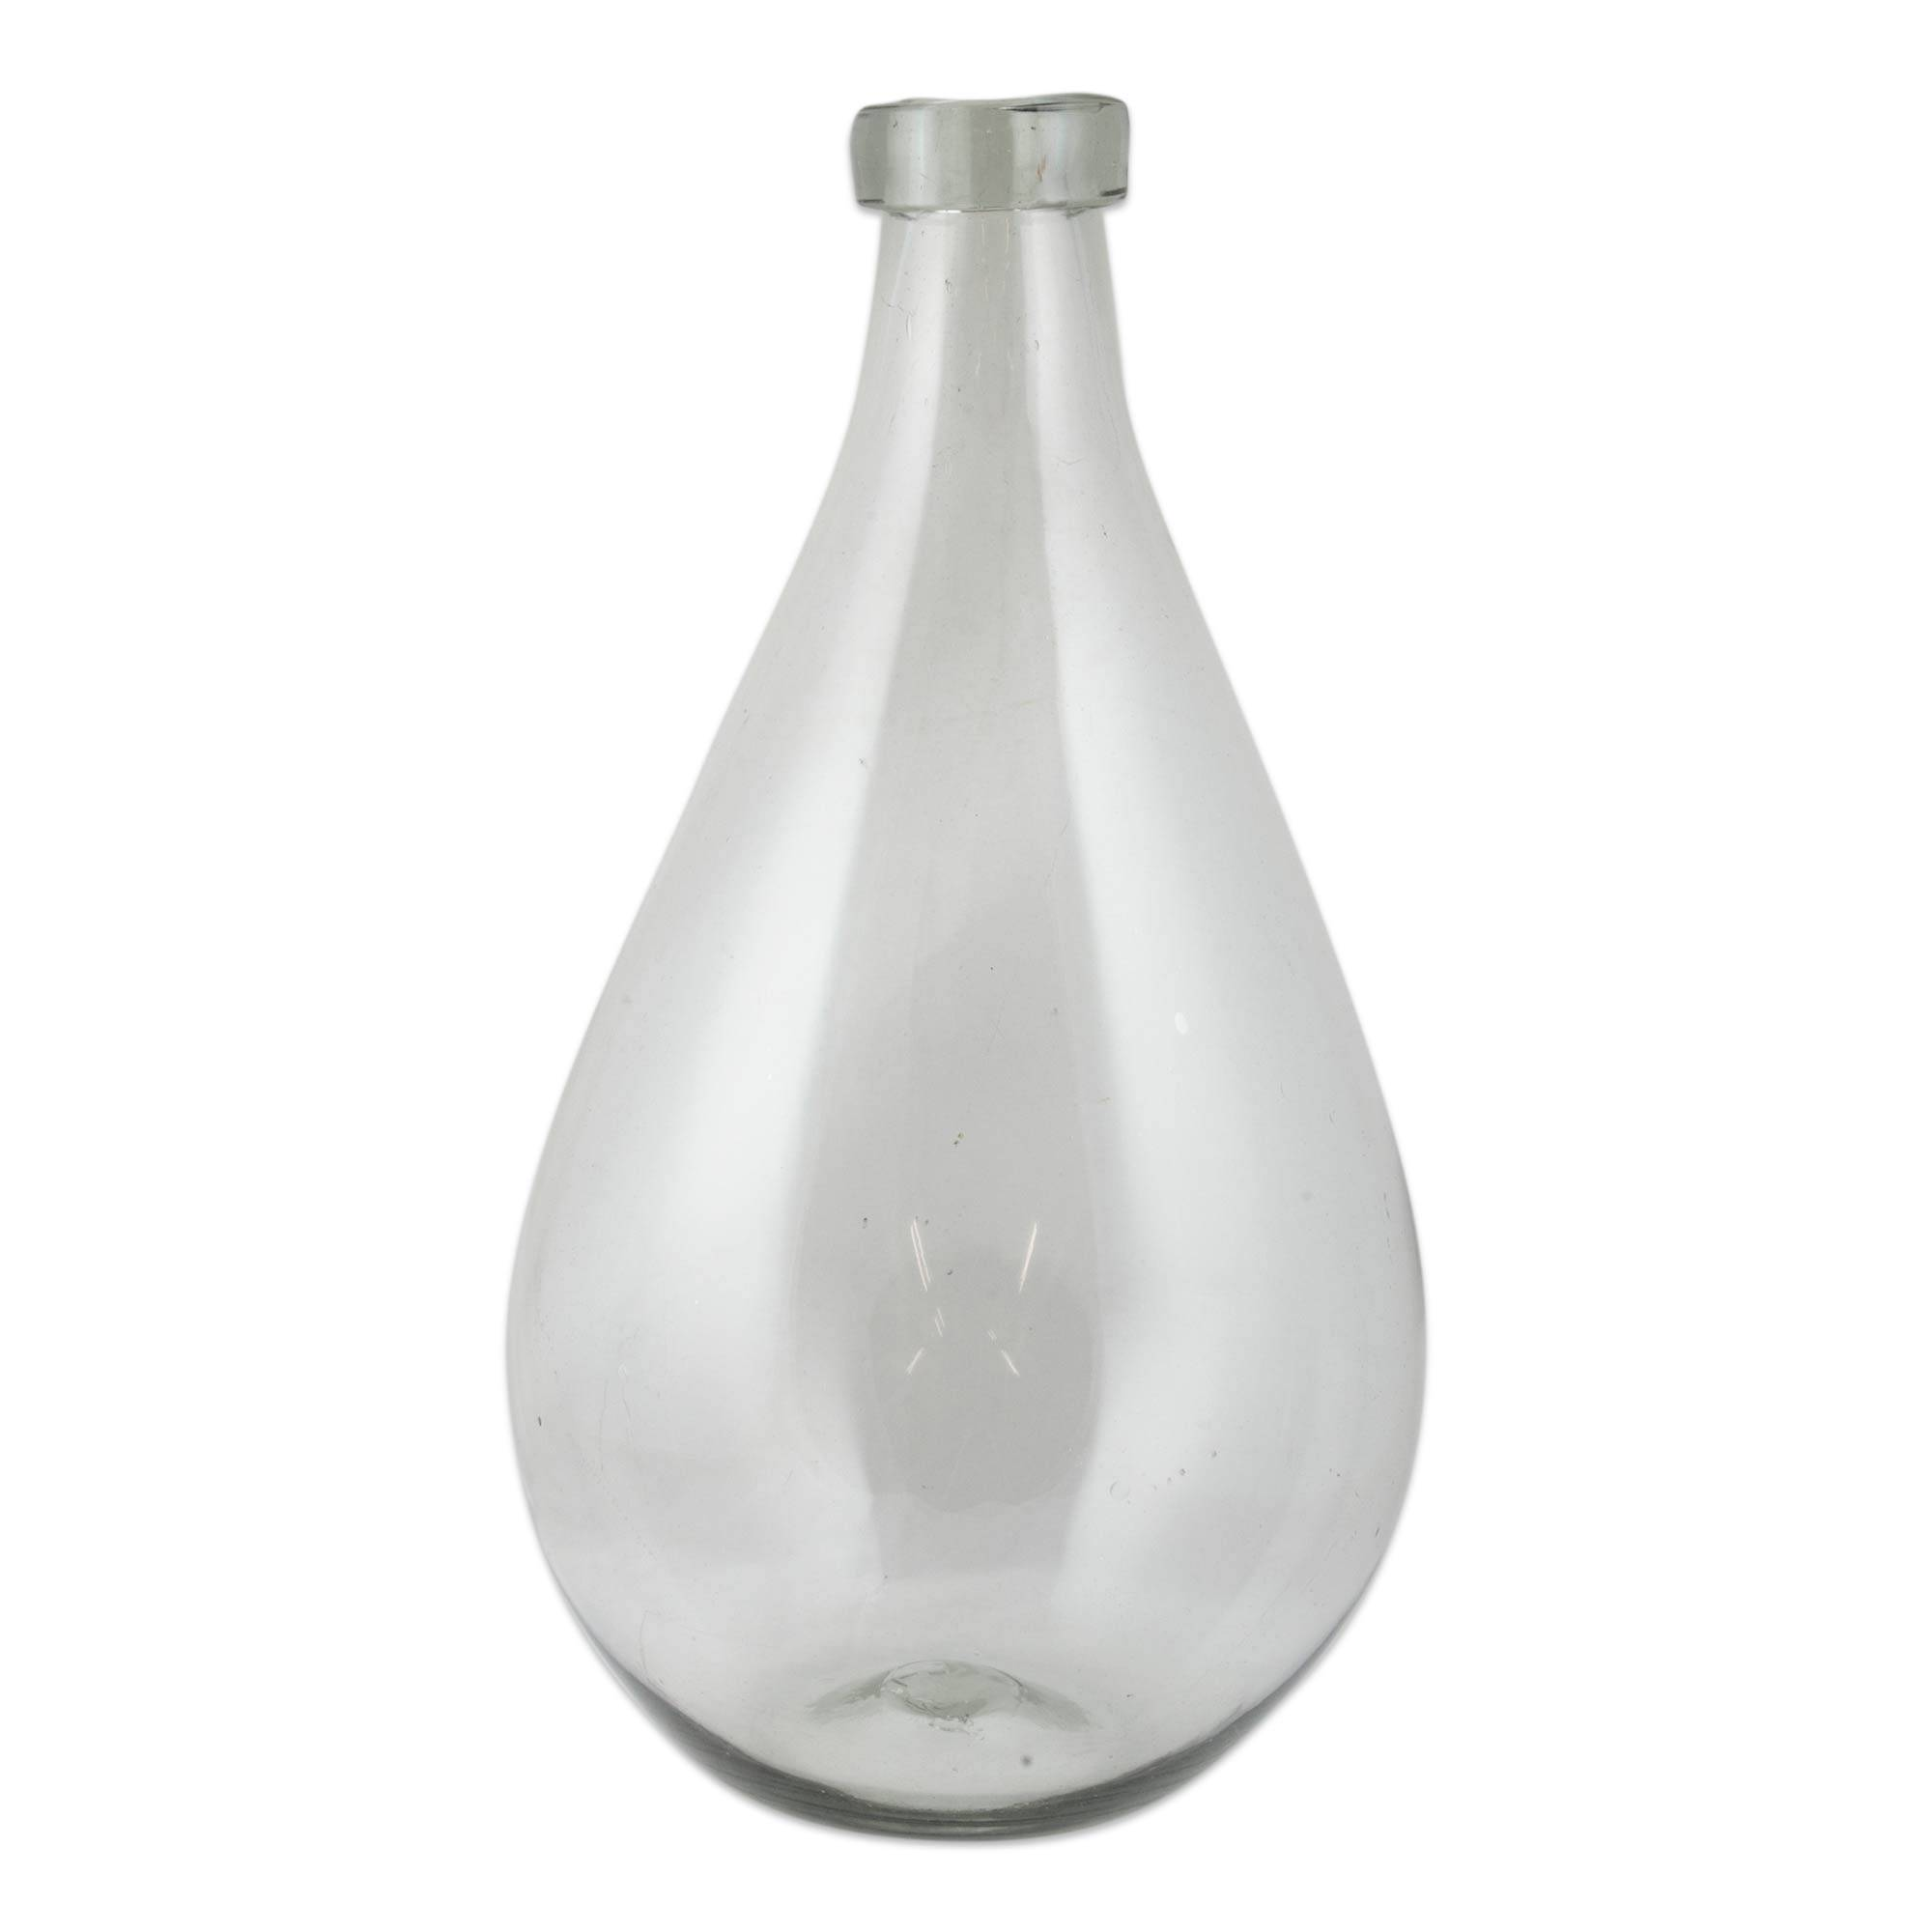 Hand Blown Recycled Clear Glass Bottle from